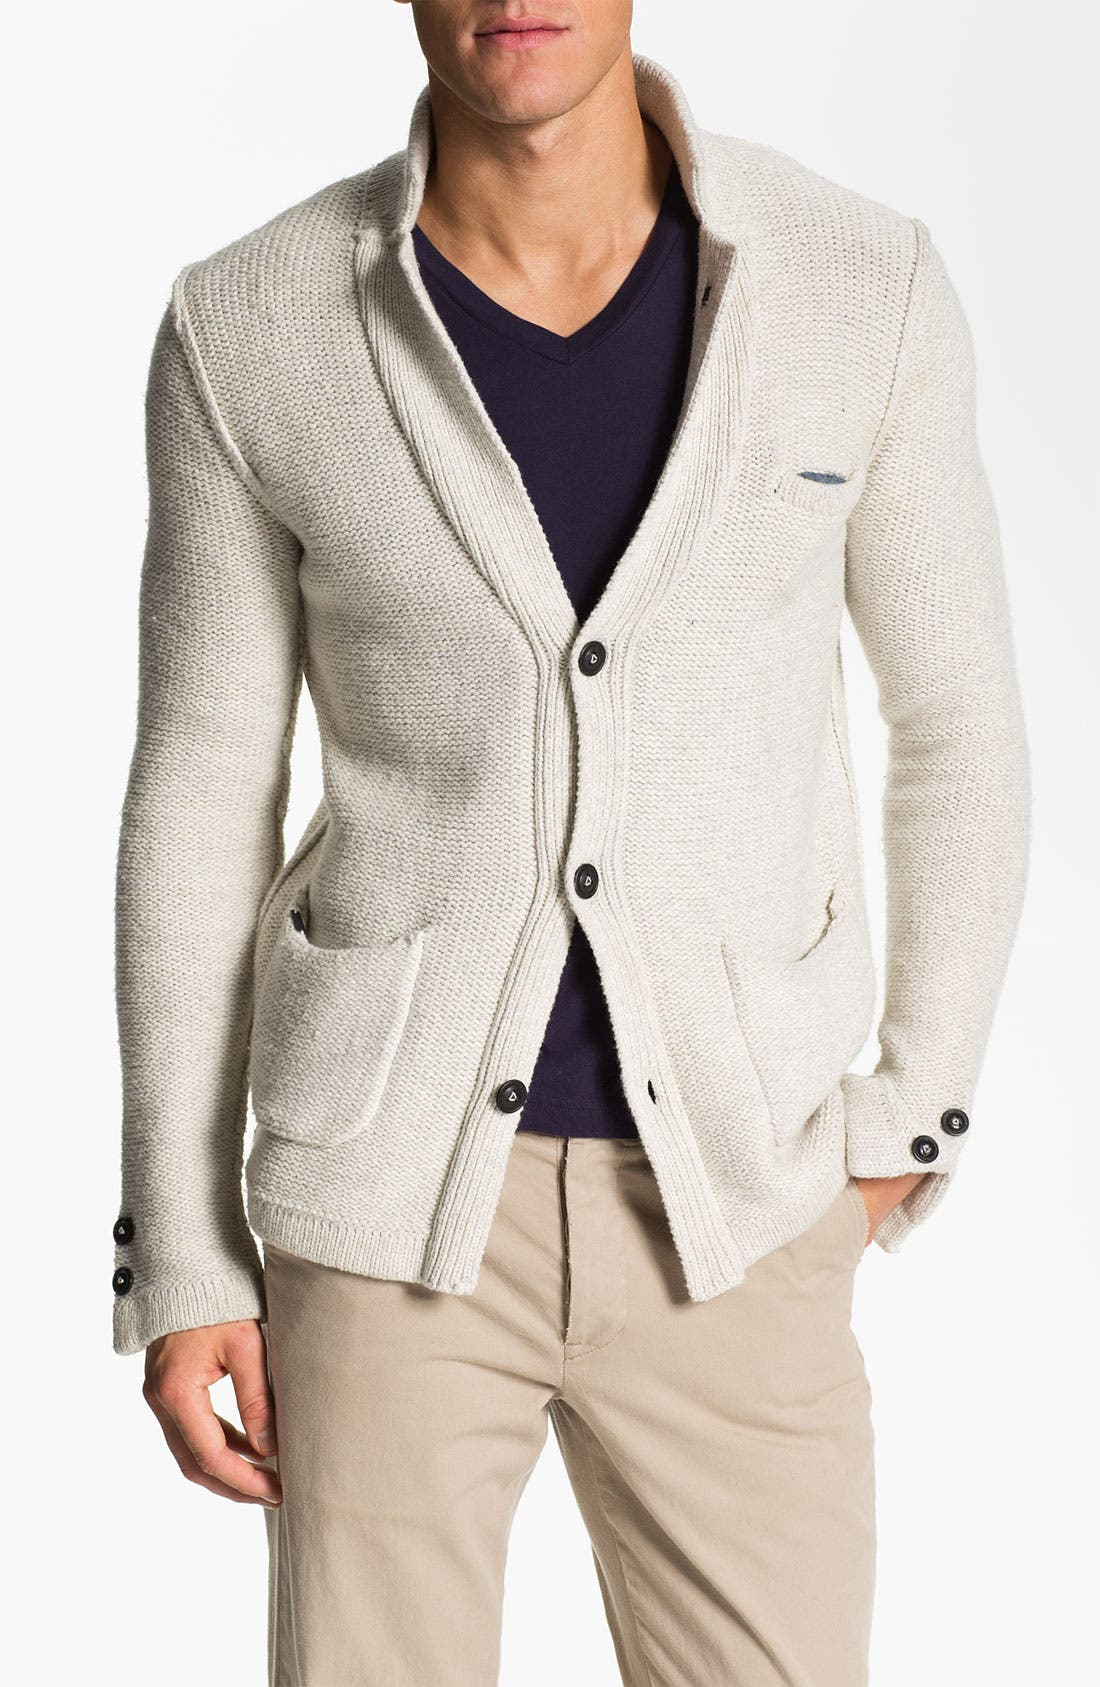 Alternate Image 1 Selected - J.C. Rags Reverse Knit Three Button Sweater Blazer